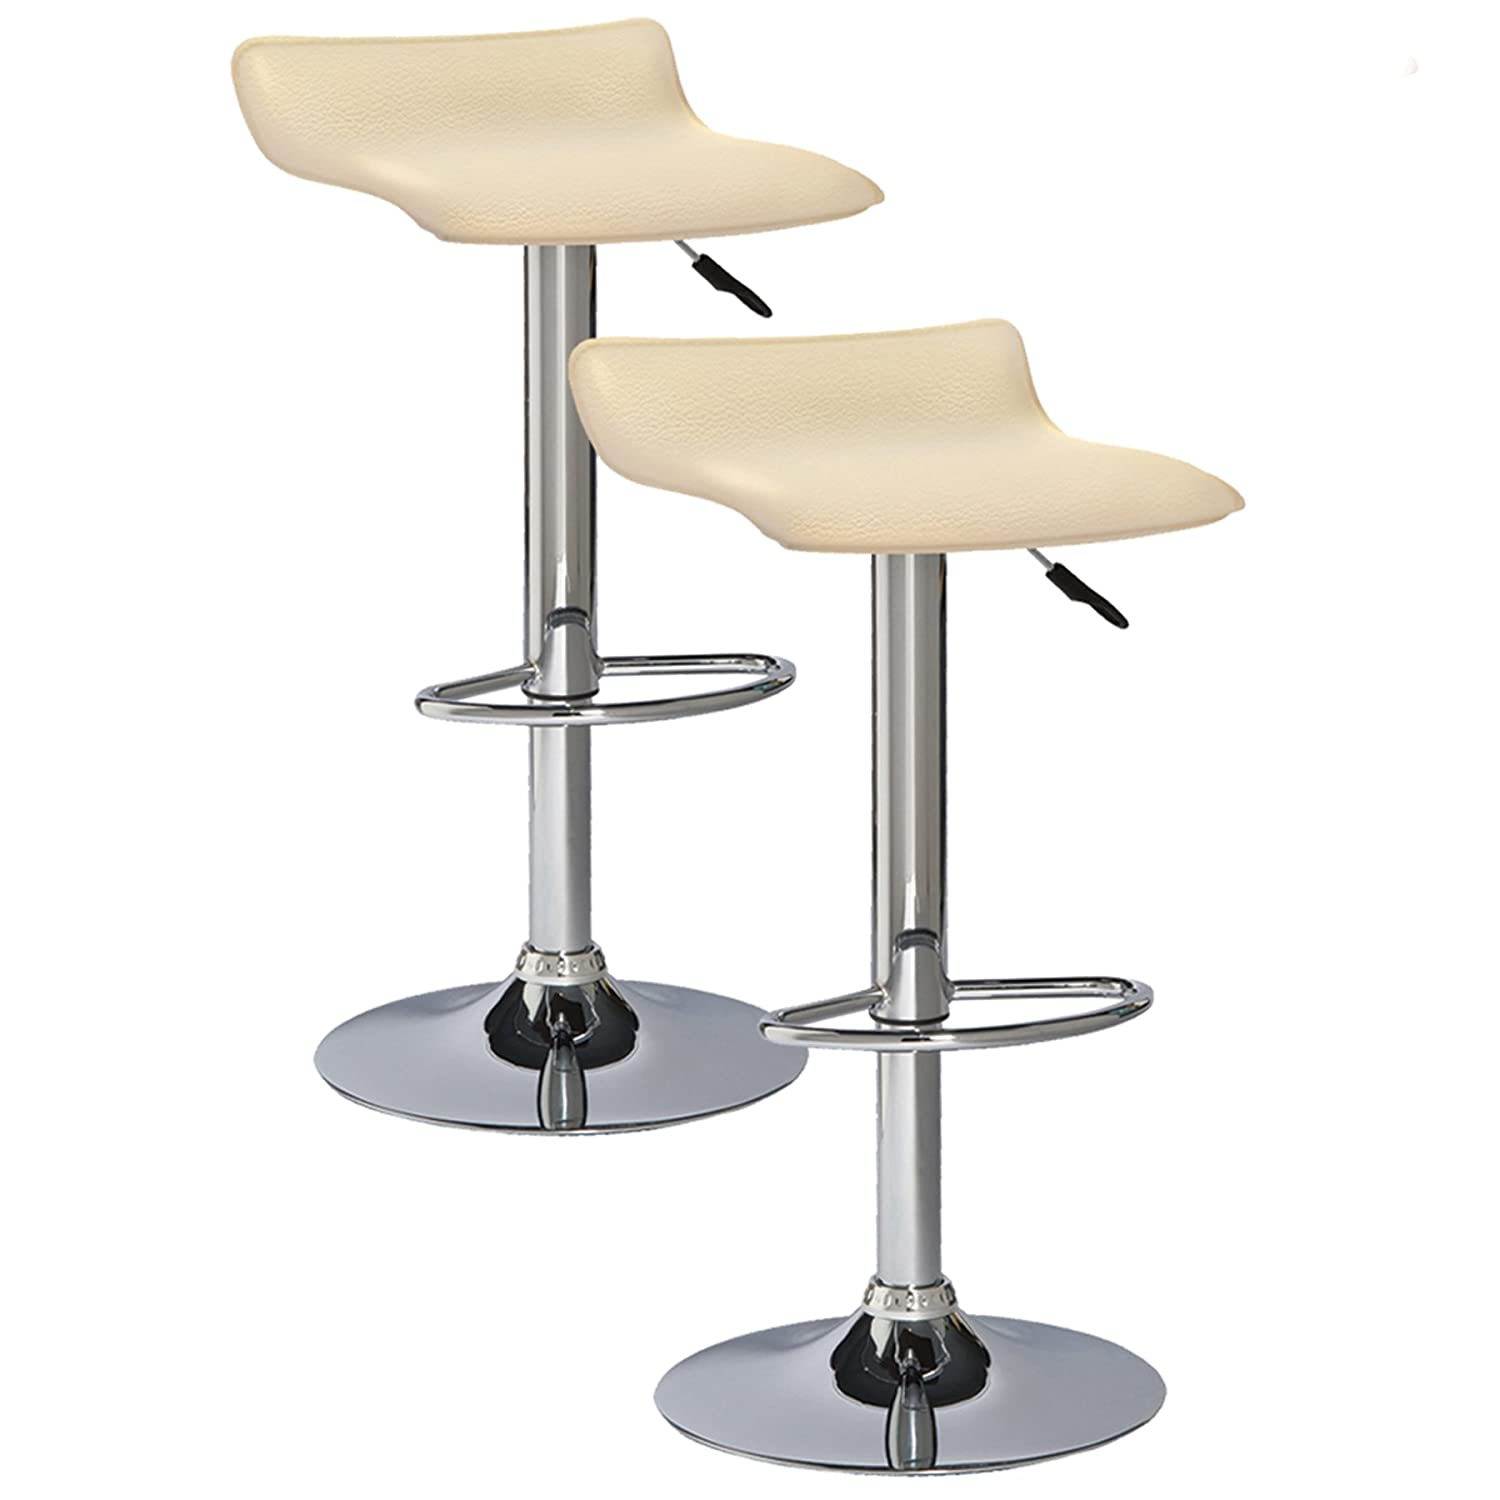 Leick Favorite Finds Bar Stool, Set of 2, Cream